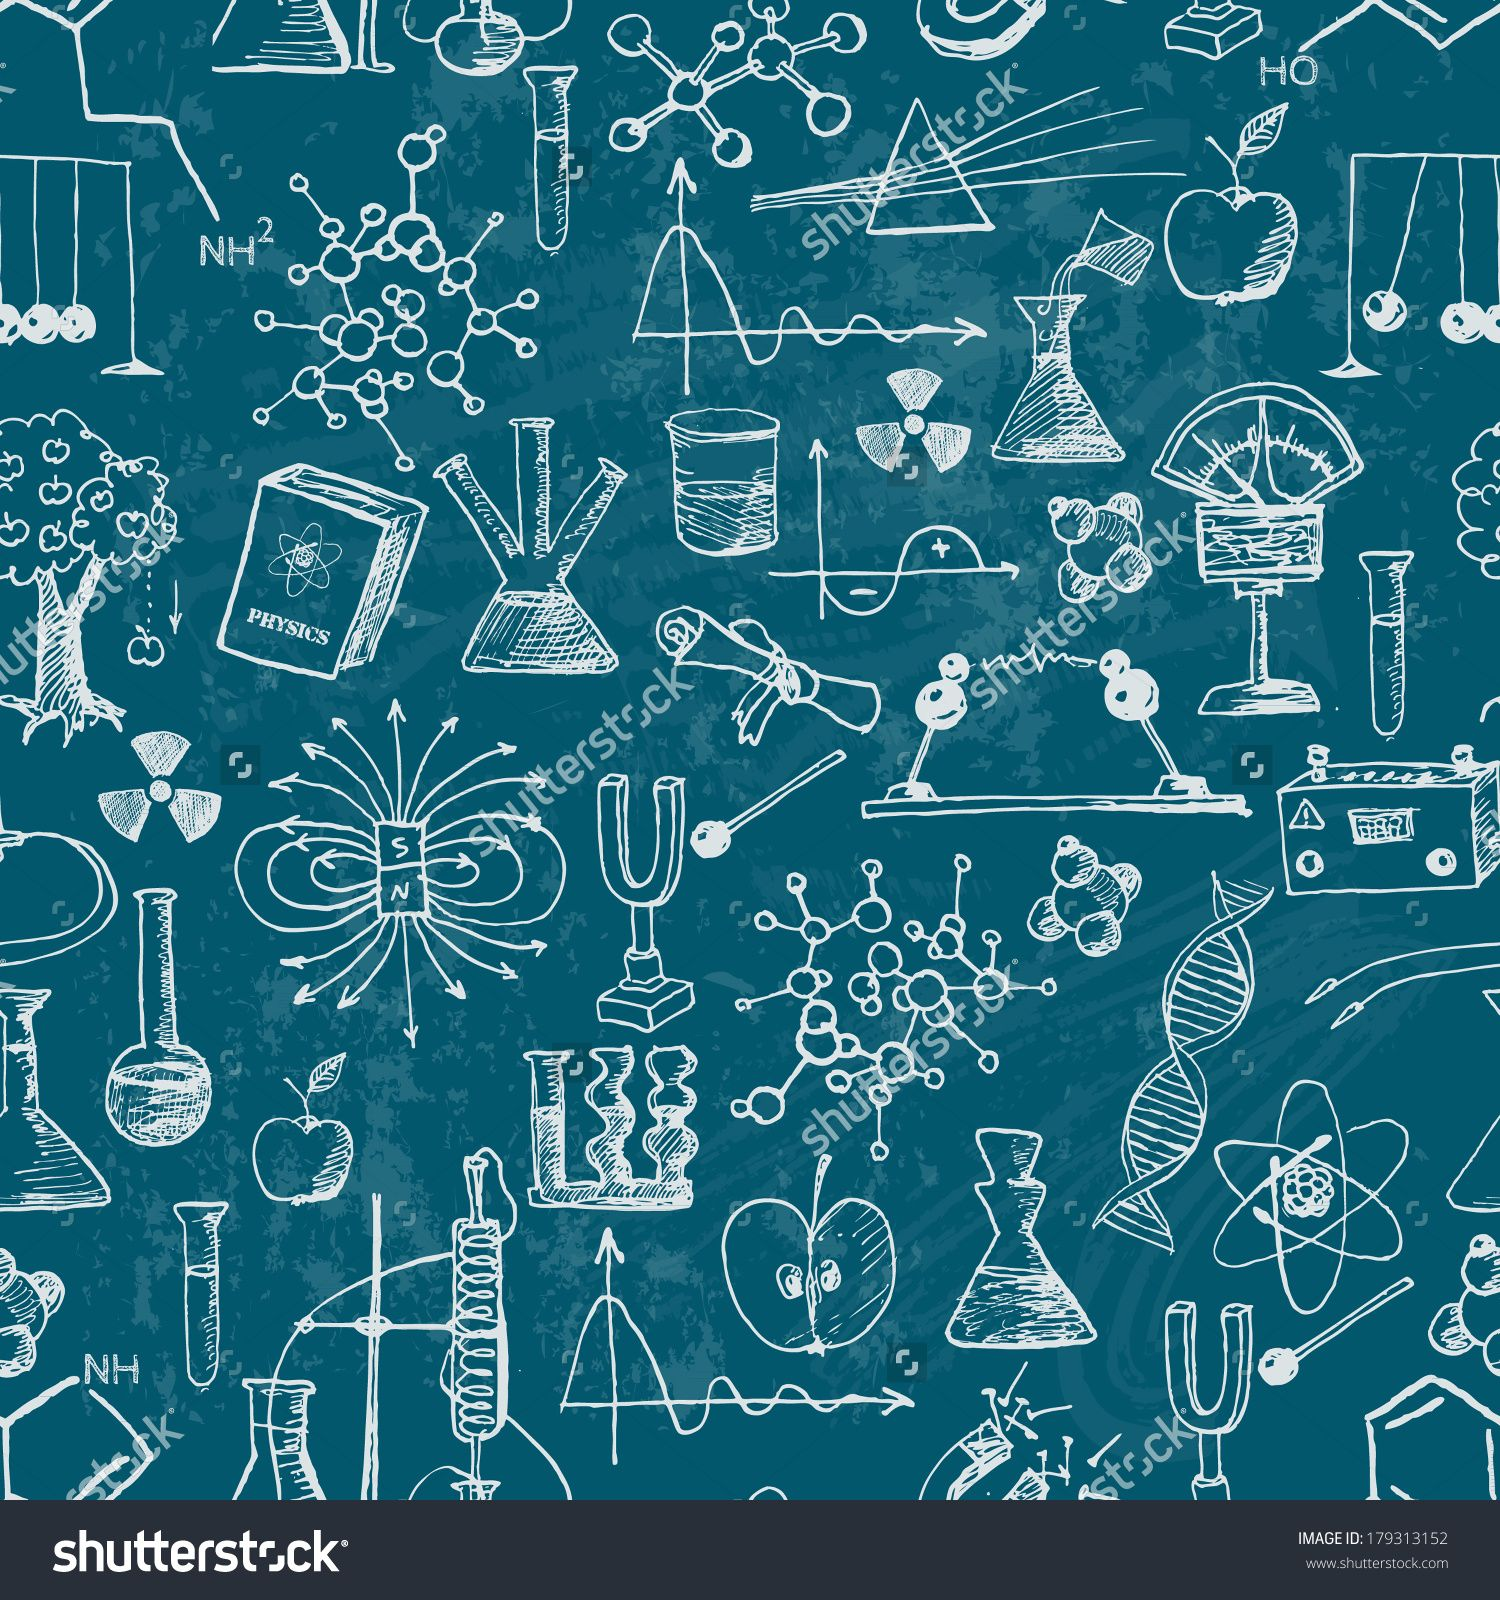 Science Laboratory Background Design: Physics, Hand Drawn Vector